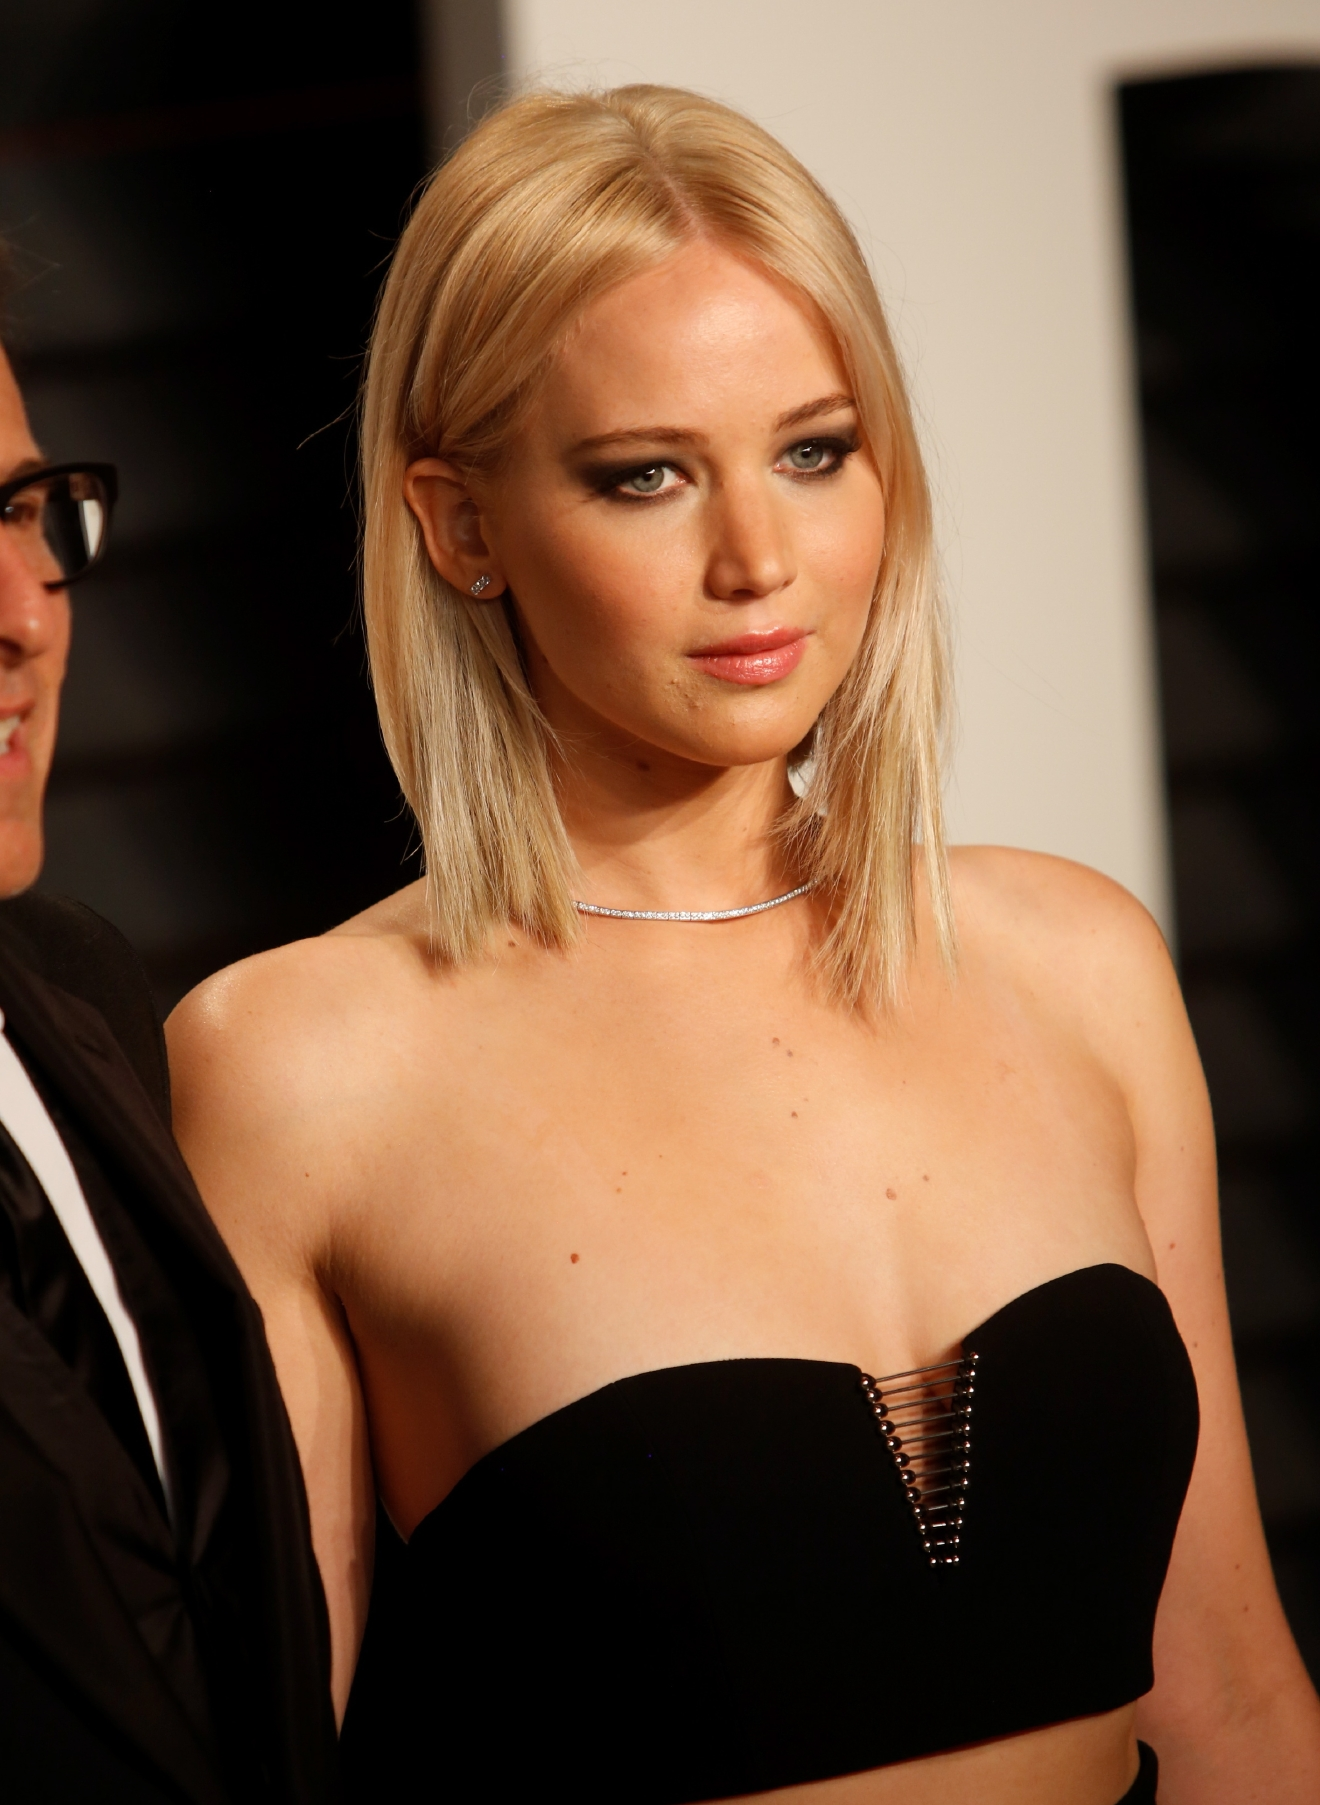 Vanity Fair Oscar Party at Wallis Annenberg Center for Performing Arts - Arrivals                                    Featuring: Jennifer Lawrence                  Where: Los Angeles, California, United States                  When: 28 Feb 2016                  Credit: WENN.com                                    **Not available for publication in Germany**